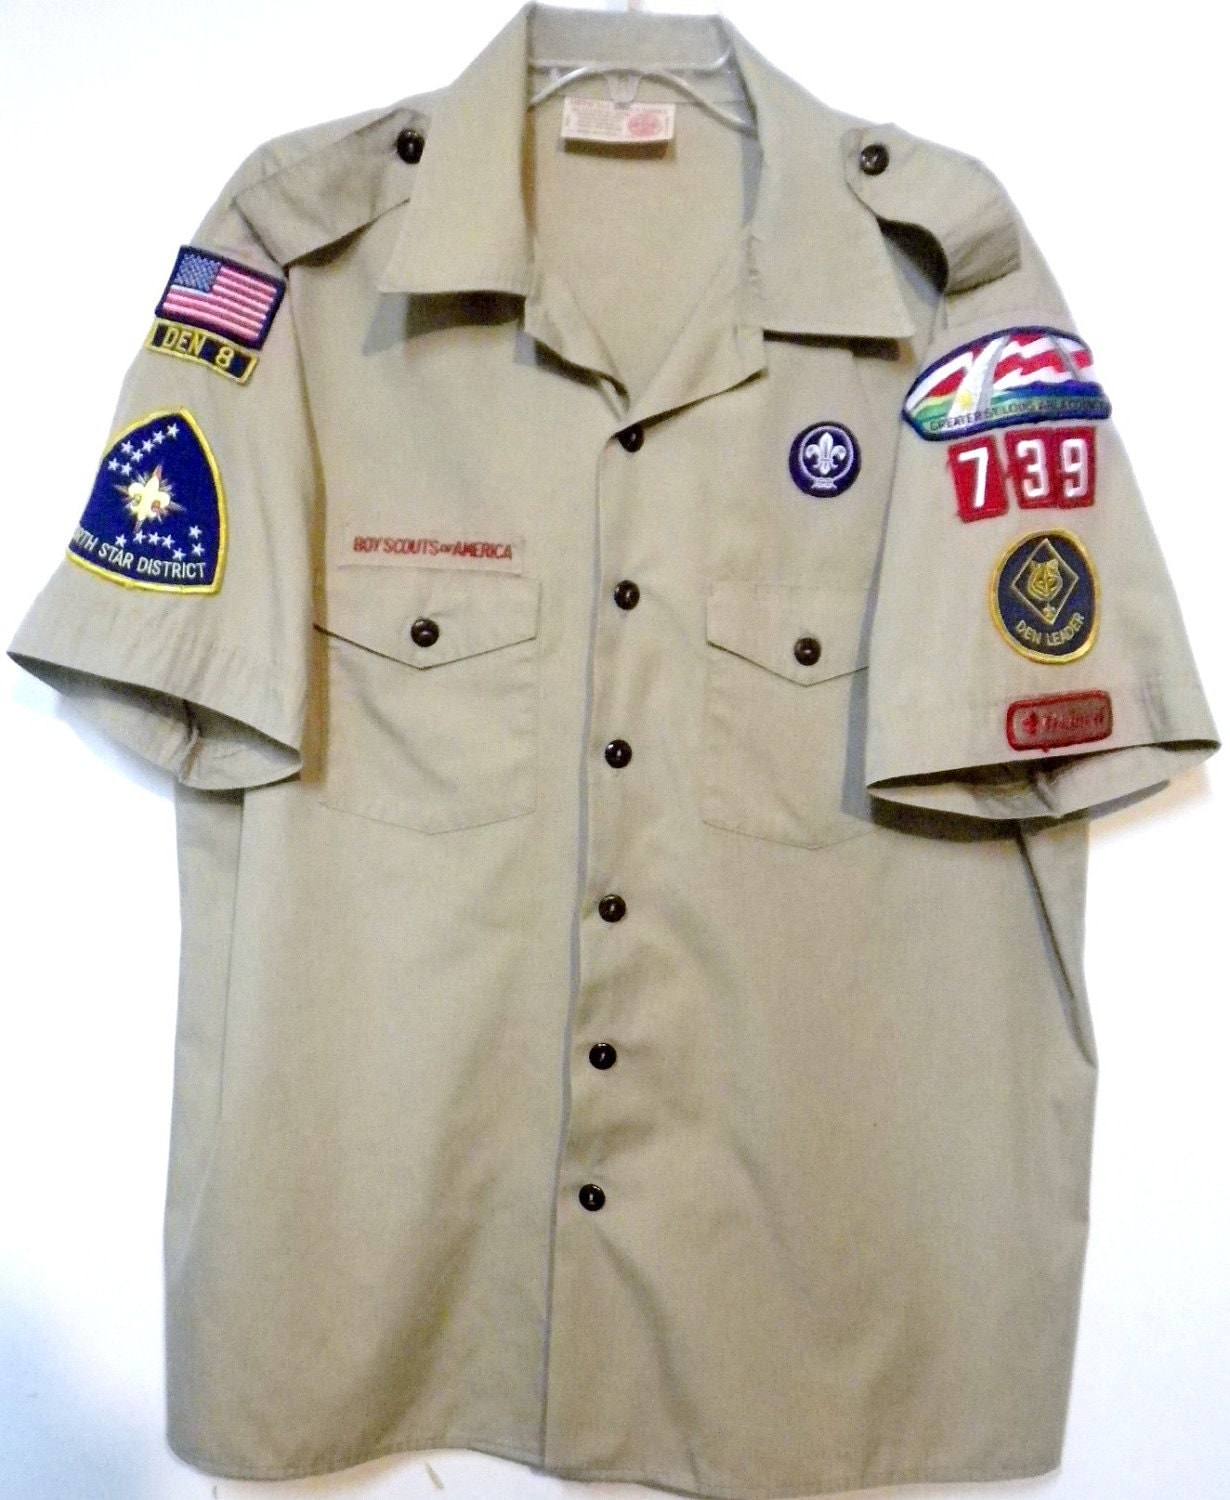 Adult Leader Uniform Inspection Sheet - Boy Scouts of America